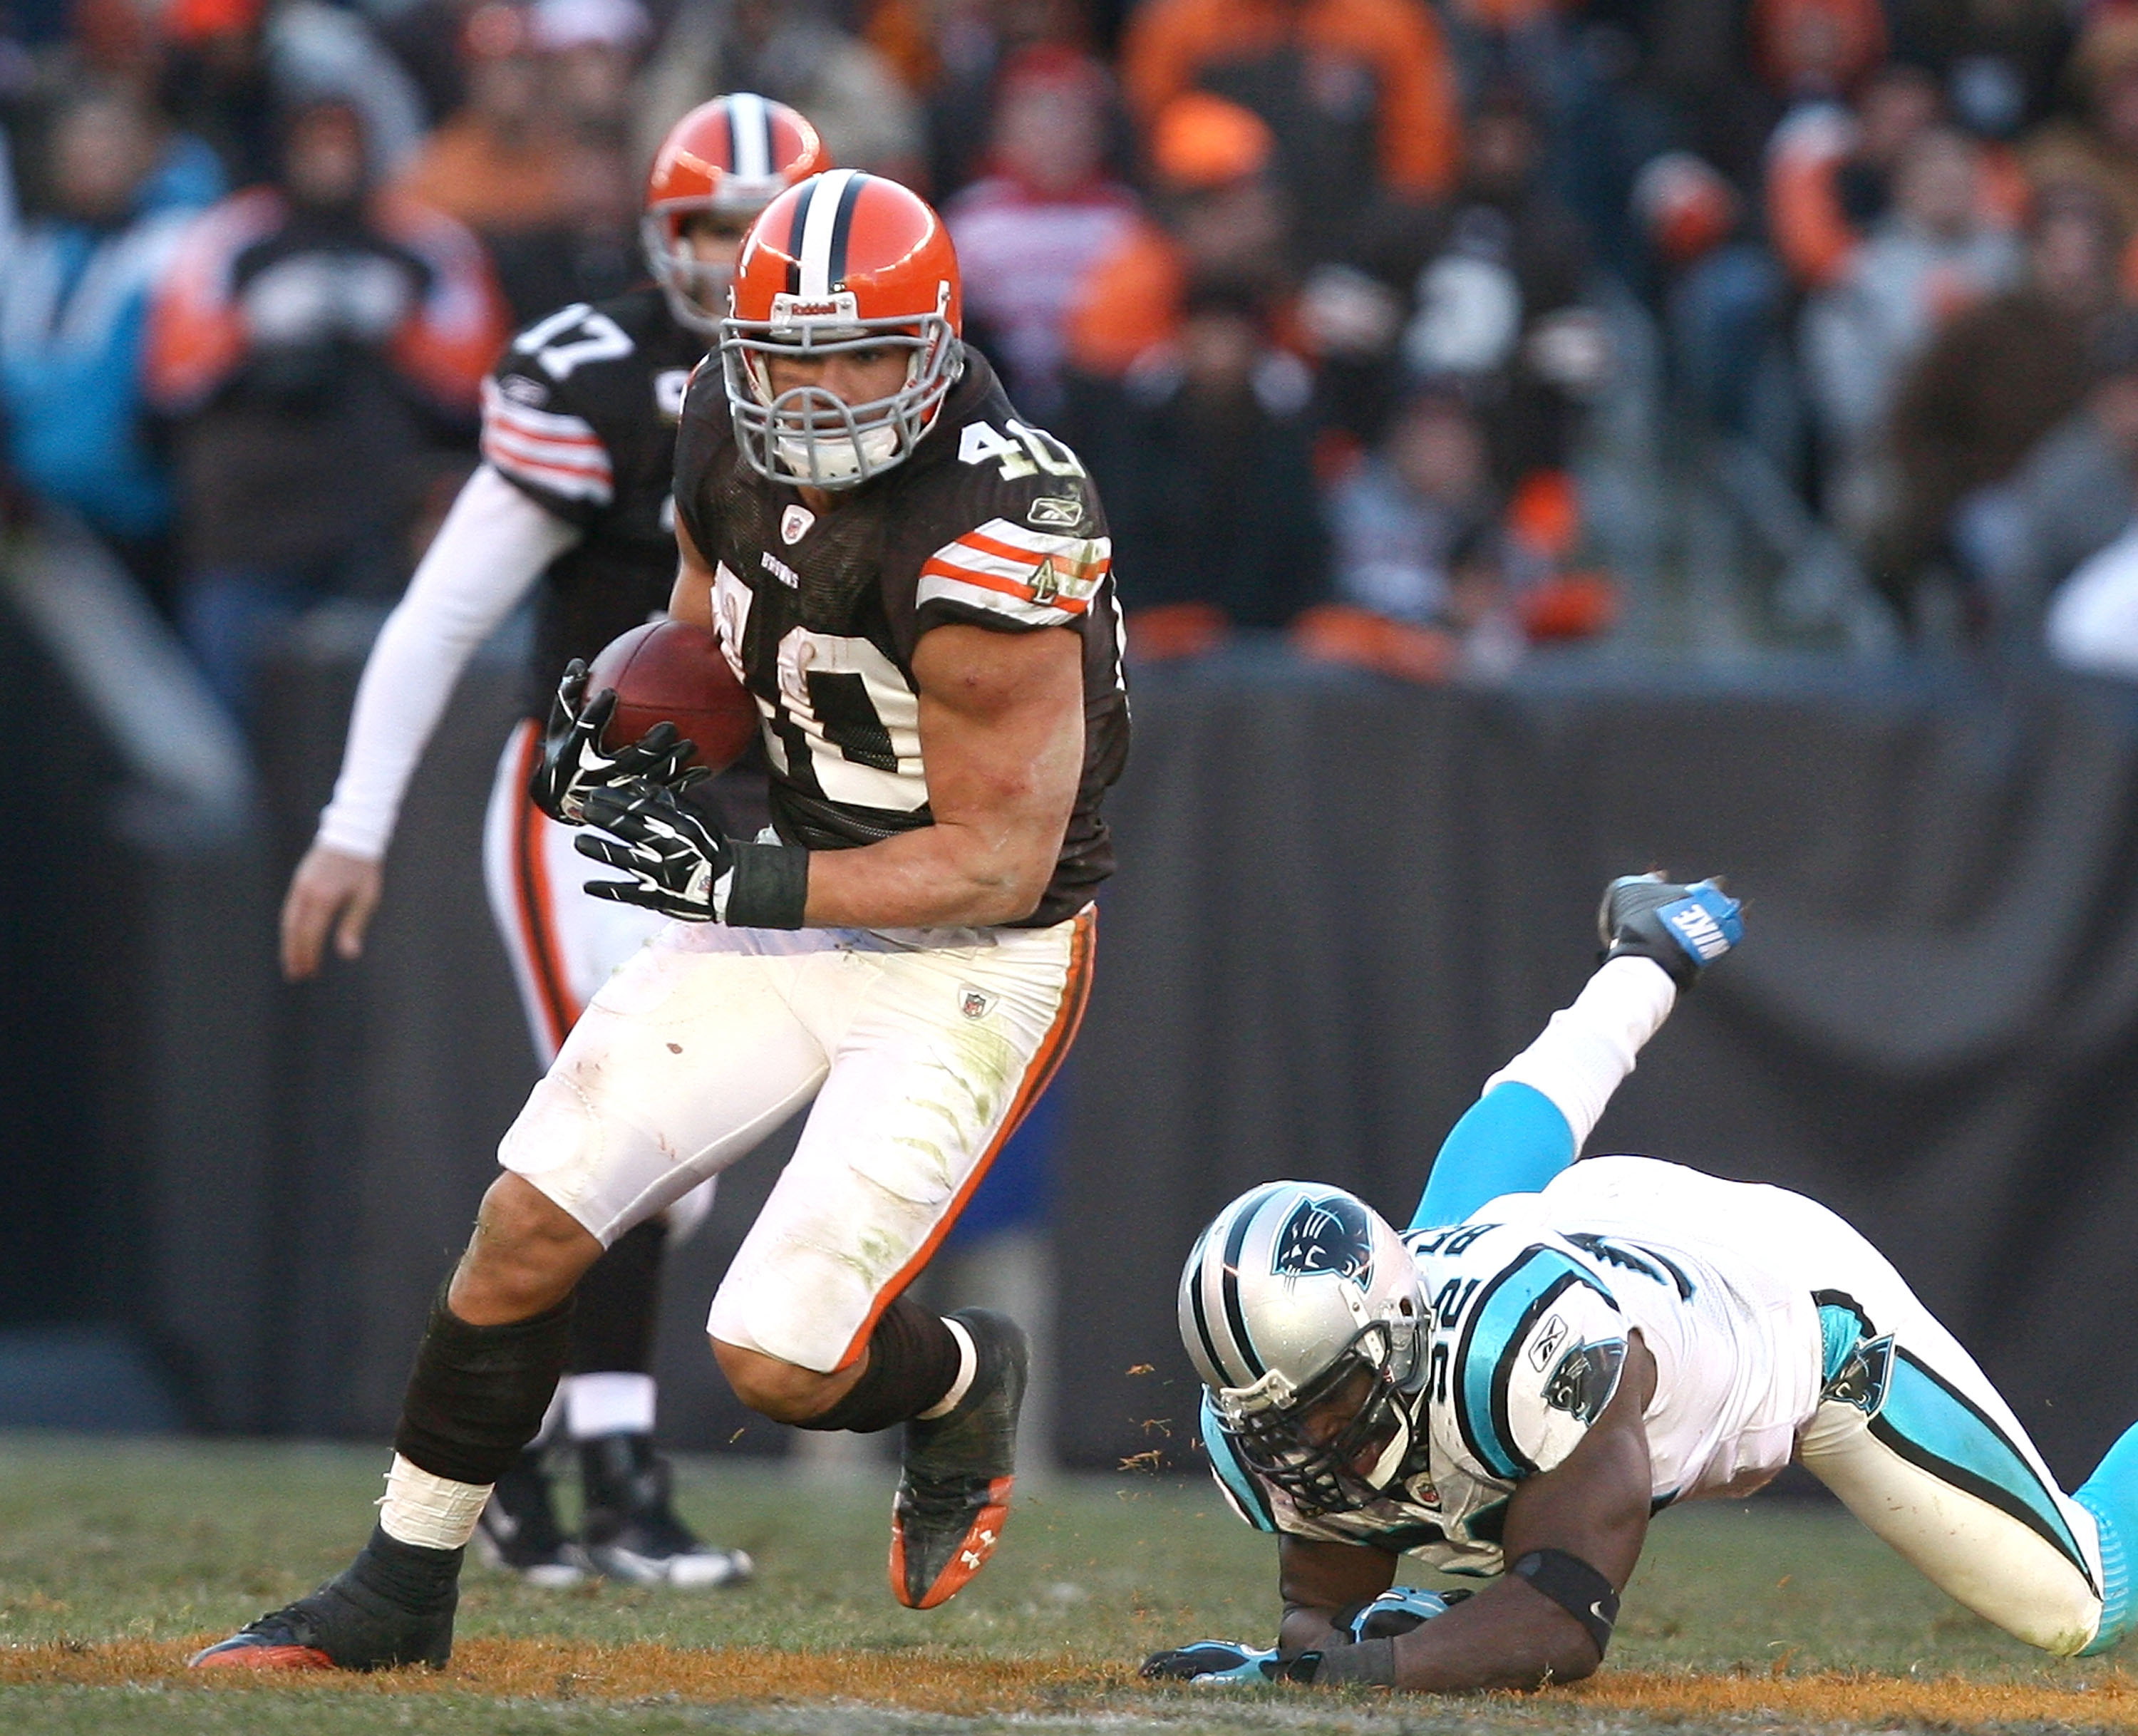 CLEVELAND - NOVEMBER 28:  Running back Peyton Hillis #40 of the Cleveland Browns runs the ball by linebacker Jon Beason #52 of the Carolina Panthers at Cleveland Browns Stadium on November 28, 2010 in Cleveland, Ohio.  (Photo by Matt Sullivan/Getty Images